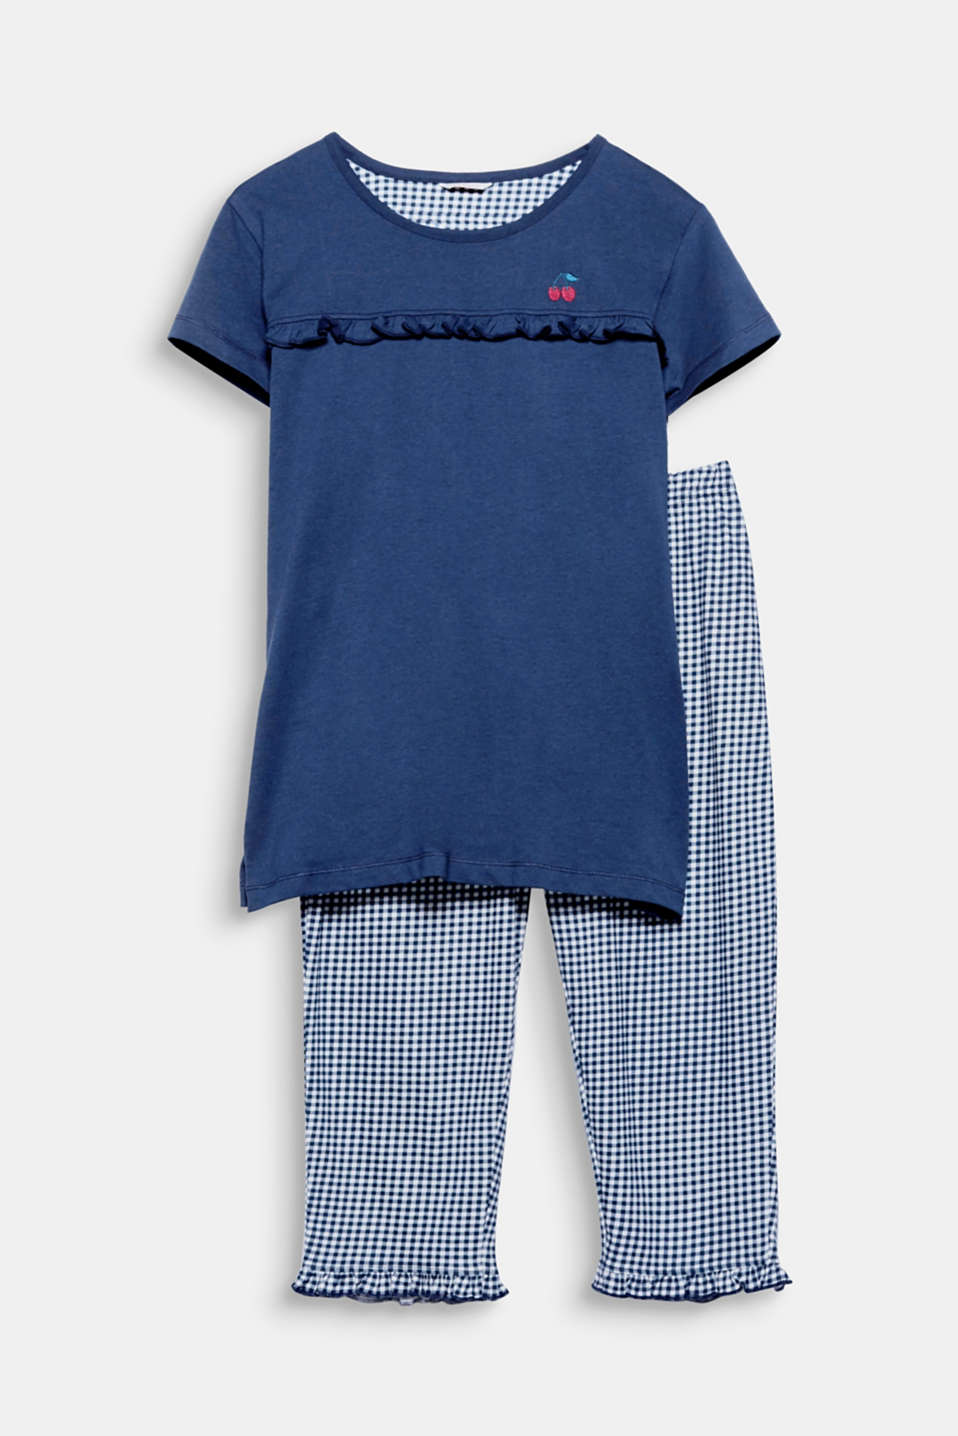 Embroidered cherries, a pretty frill and a fashionable gingham check give these airy jersey pyjamas a fresh kick!